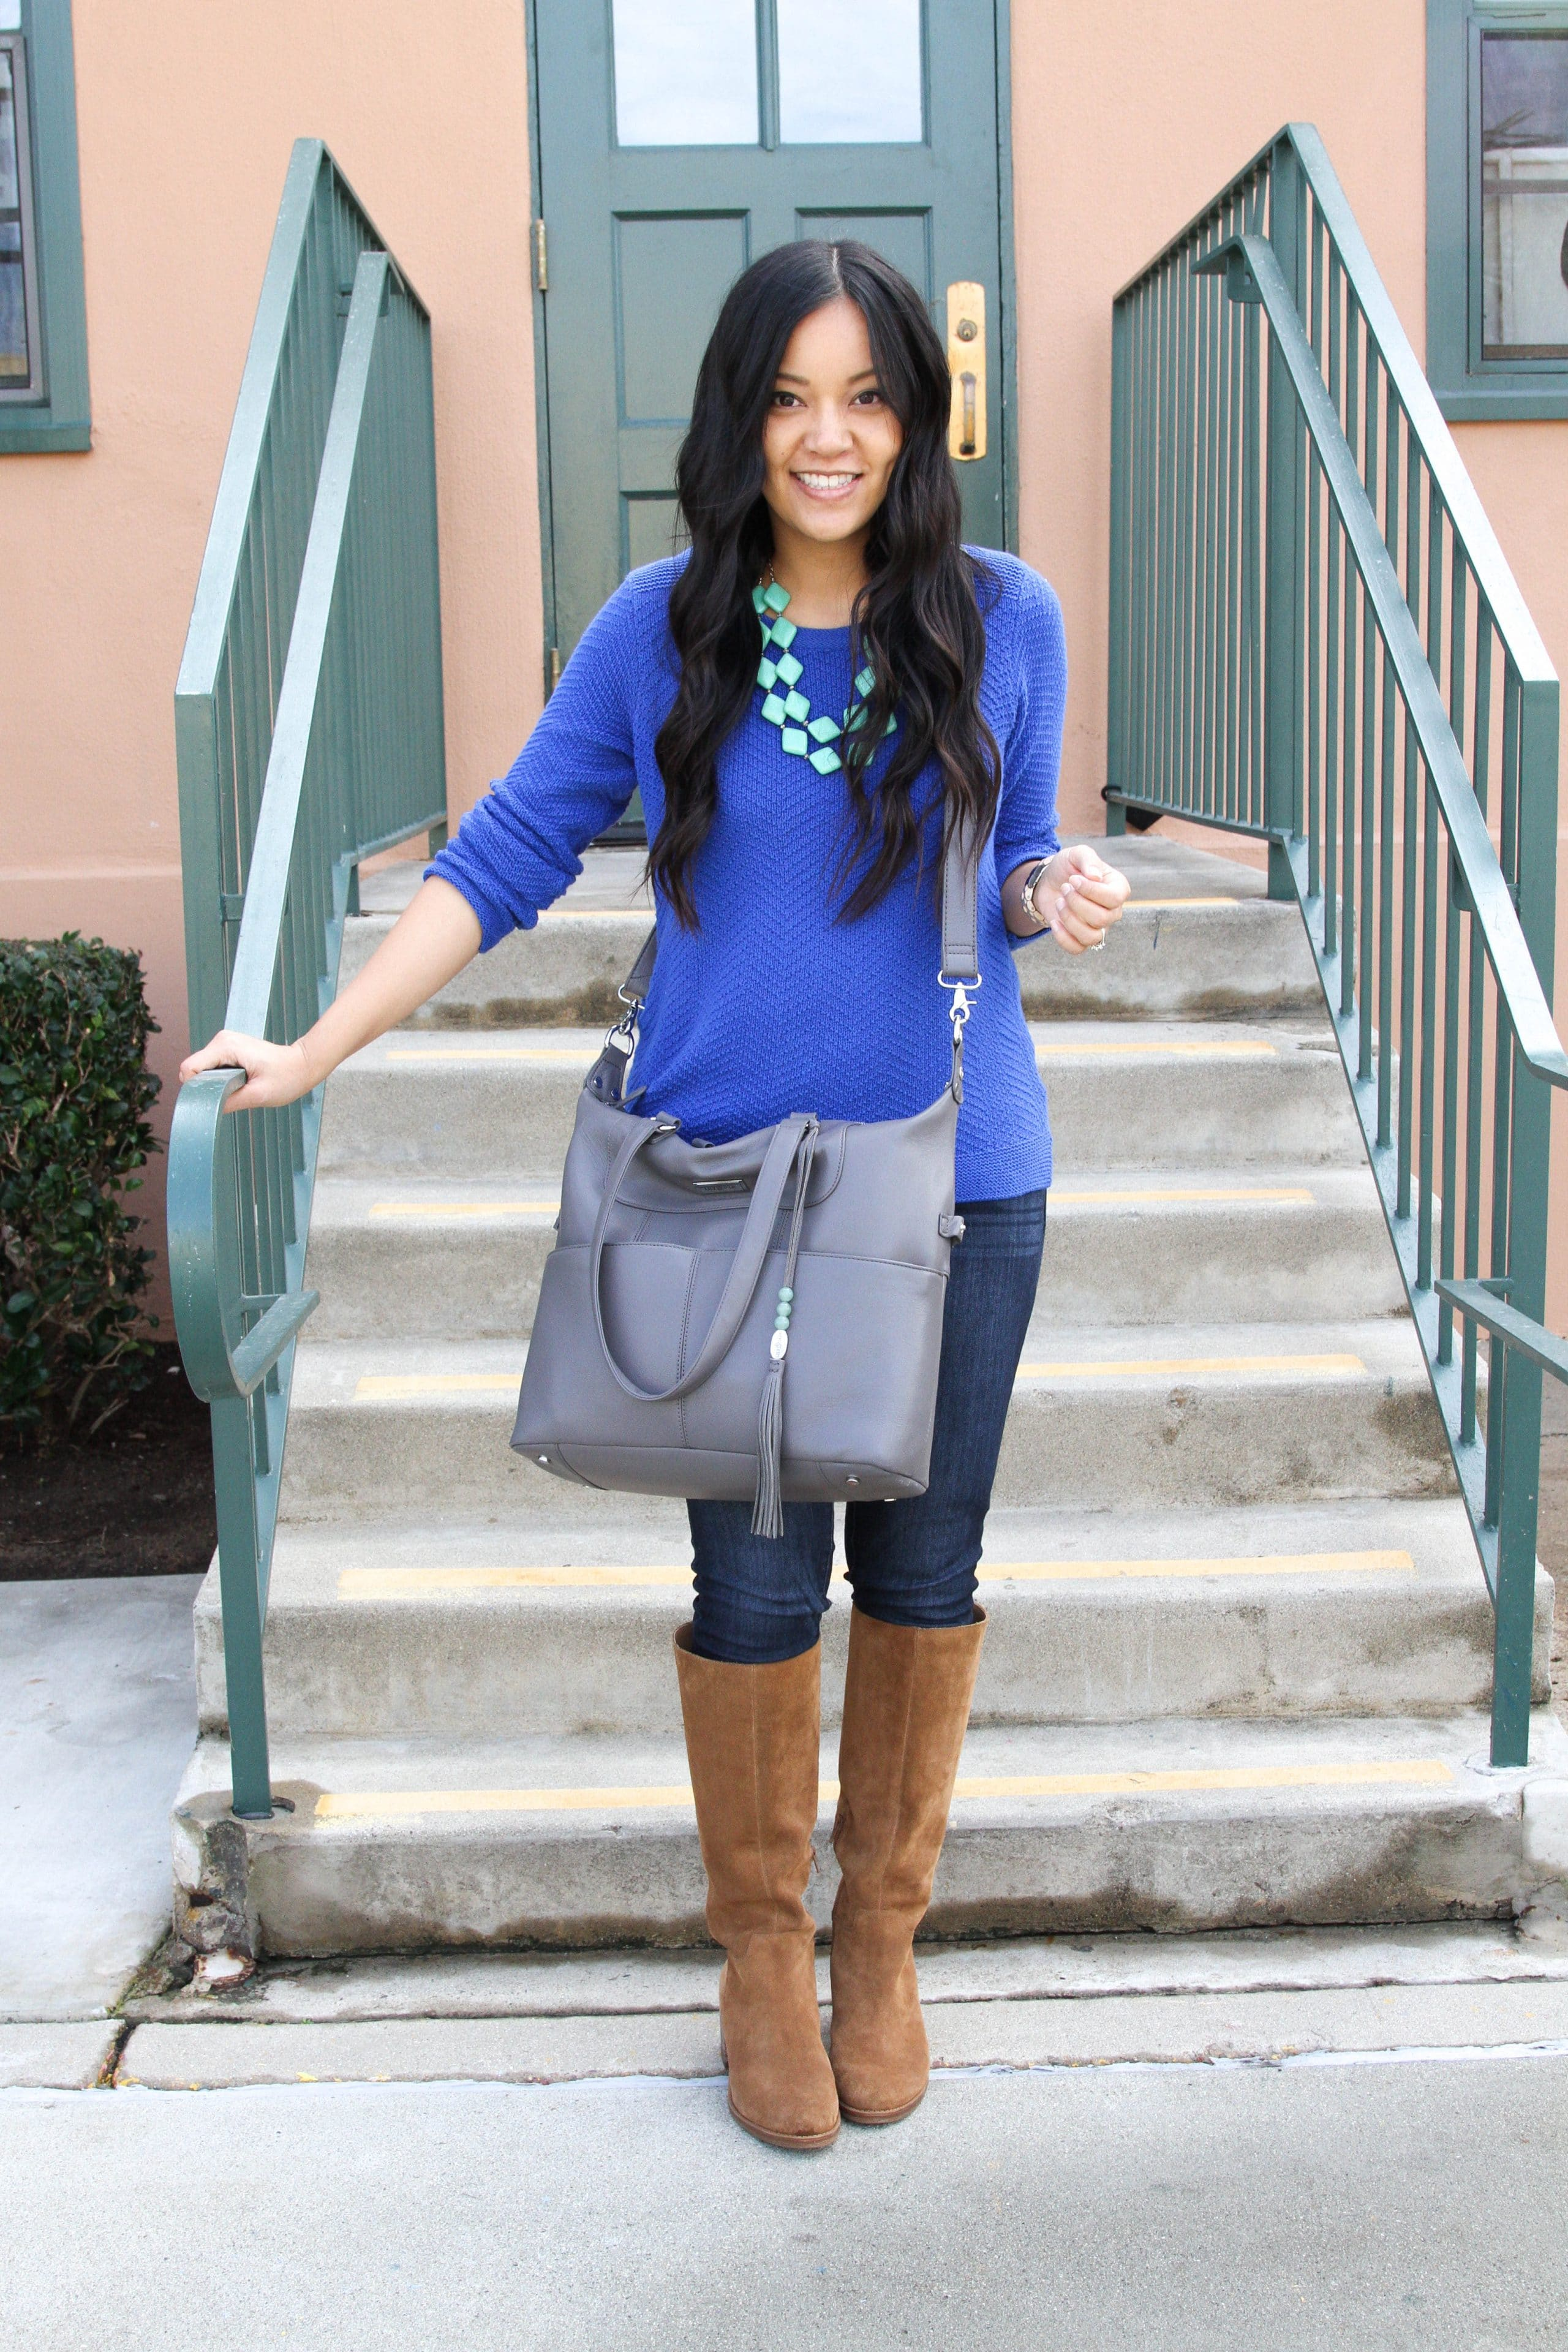 Gray Tote + Blue Sweater + Statement Necklace + Riding Boots